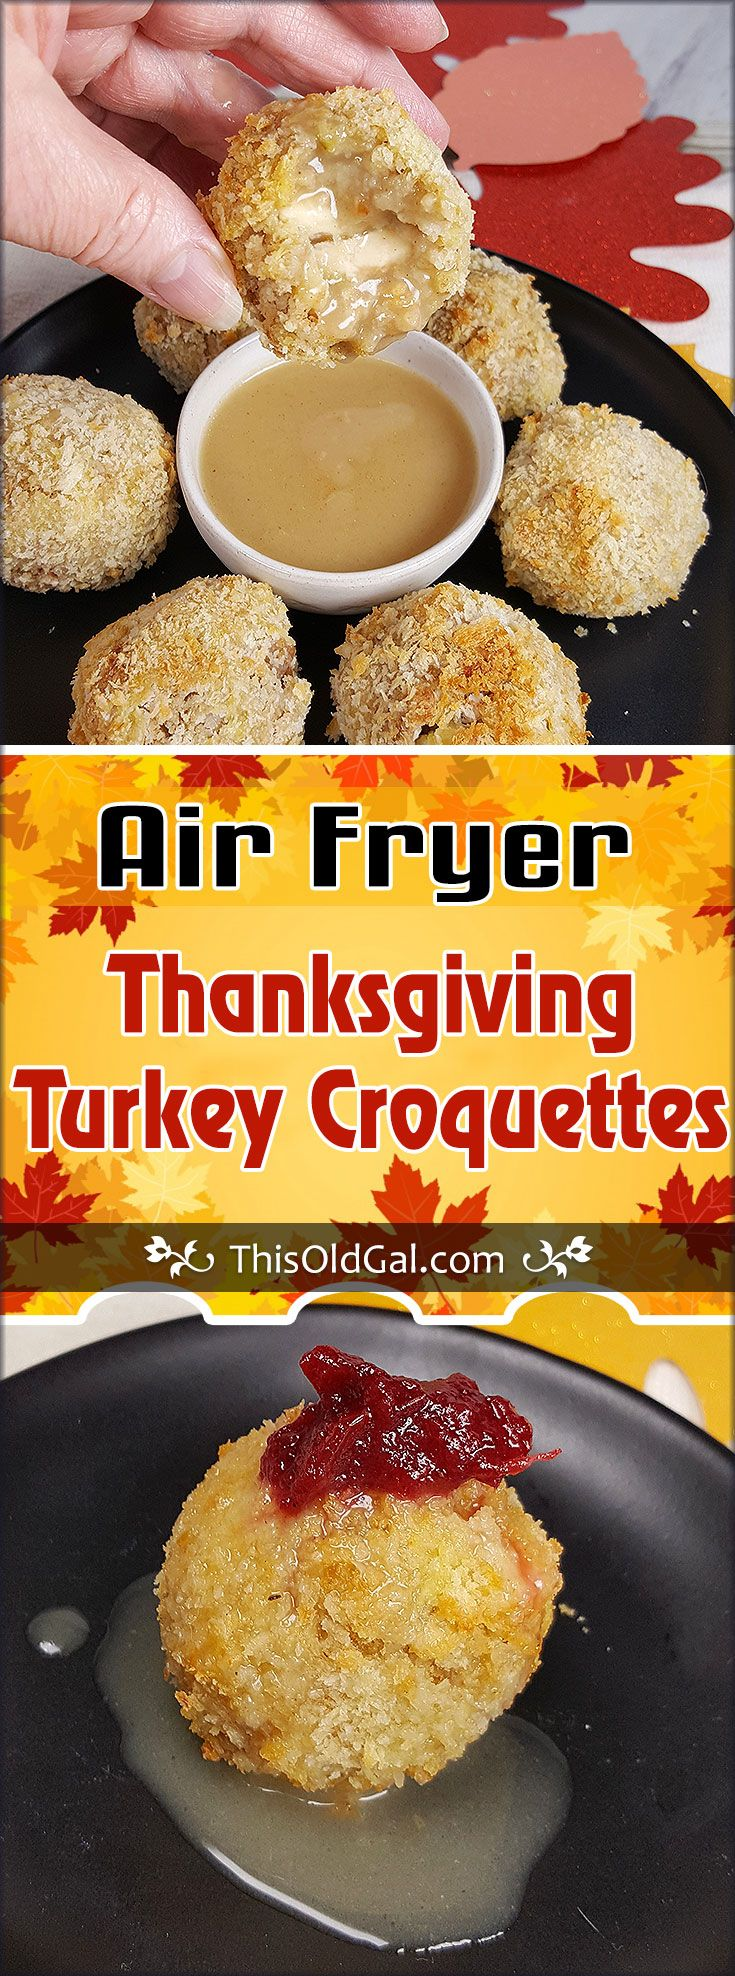 Air Fryer Turkey Croquettes {Thanksgiving Leftovers} via @thisoldgalcooks